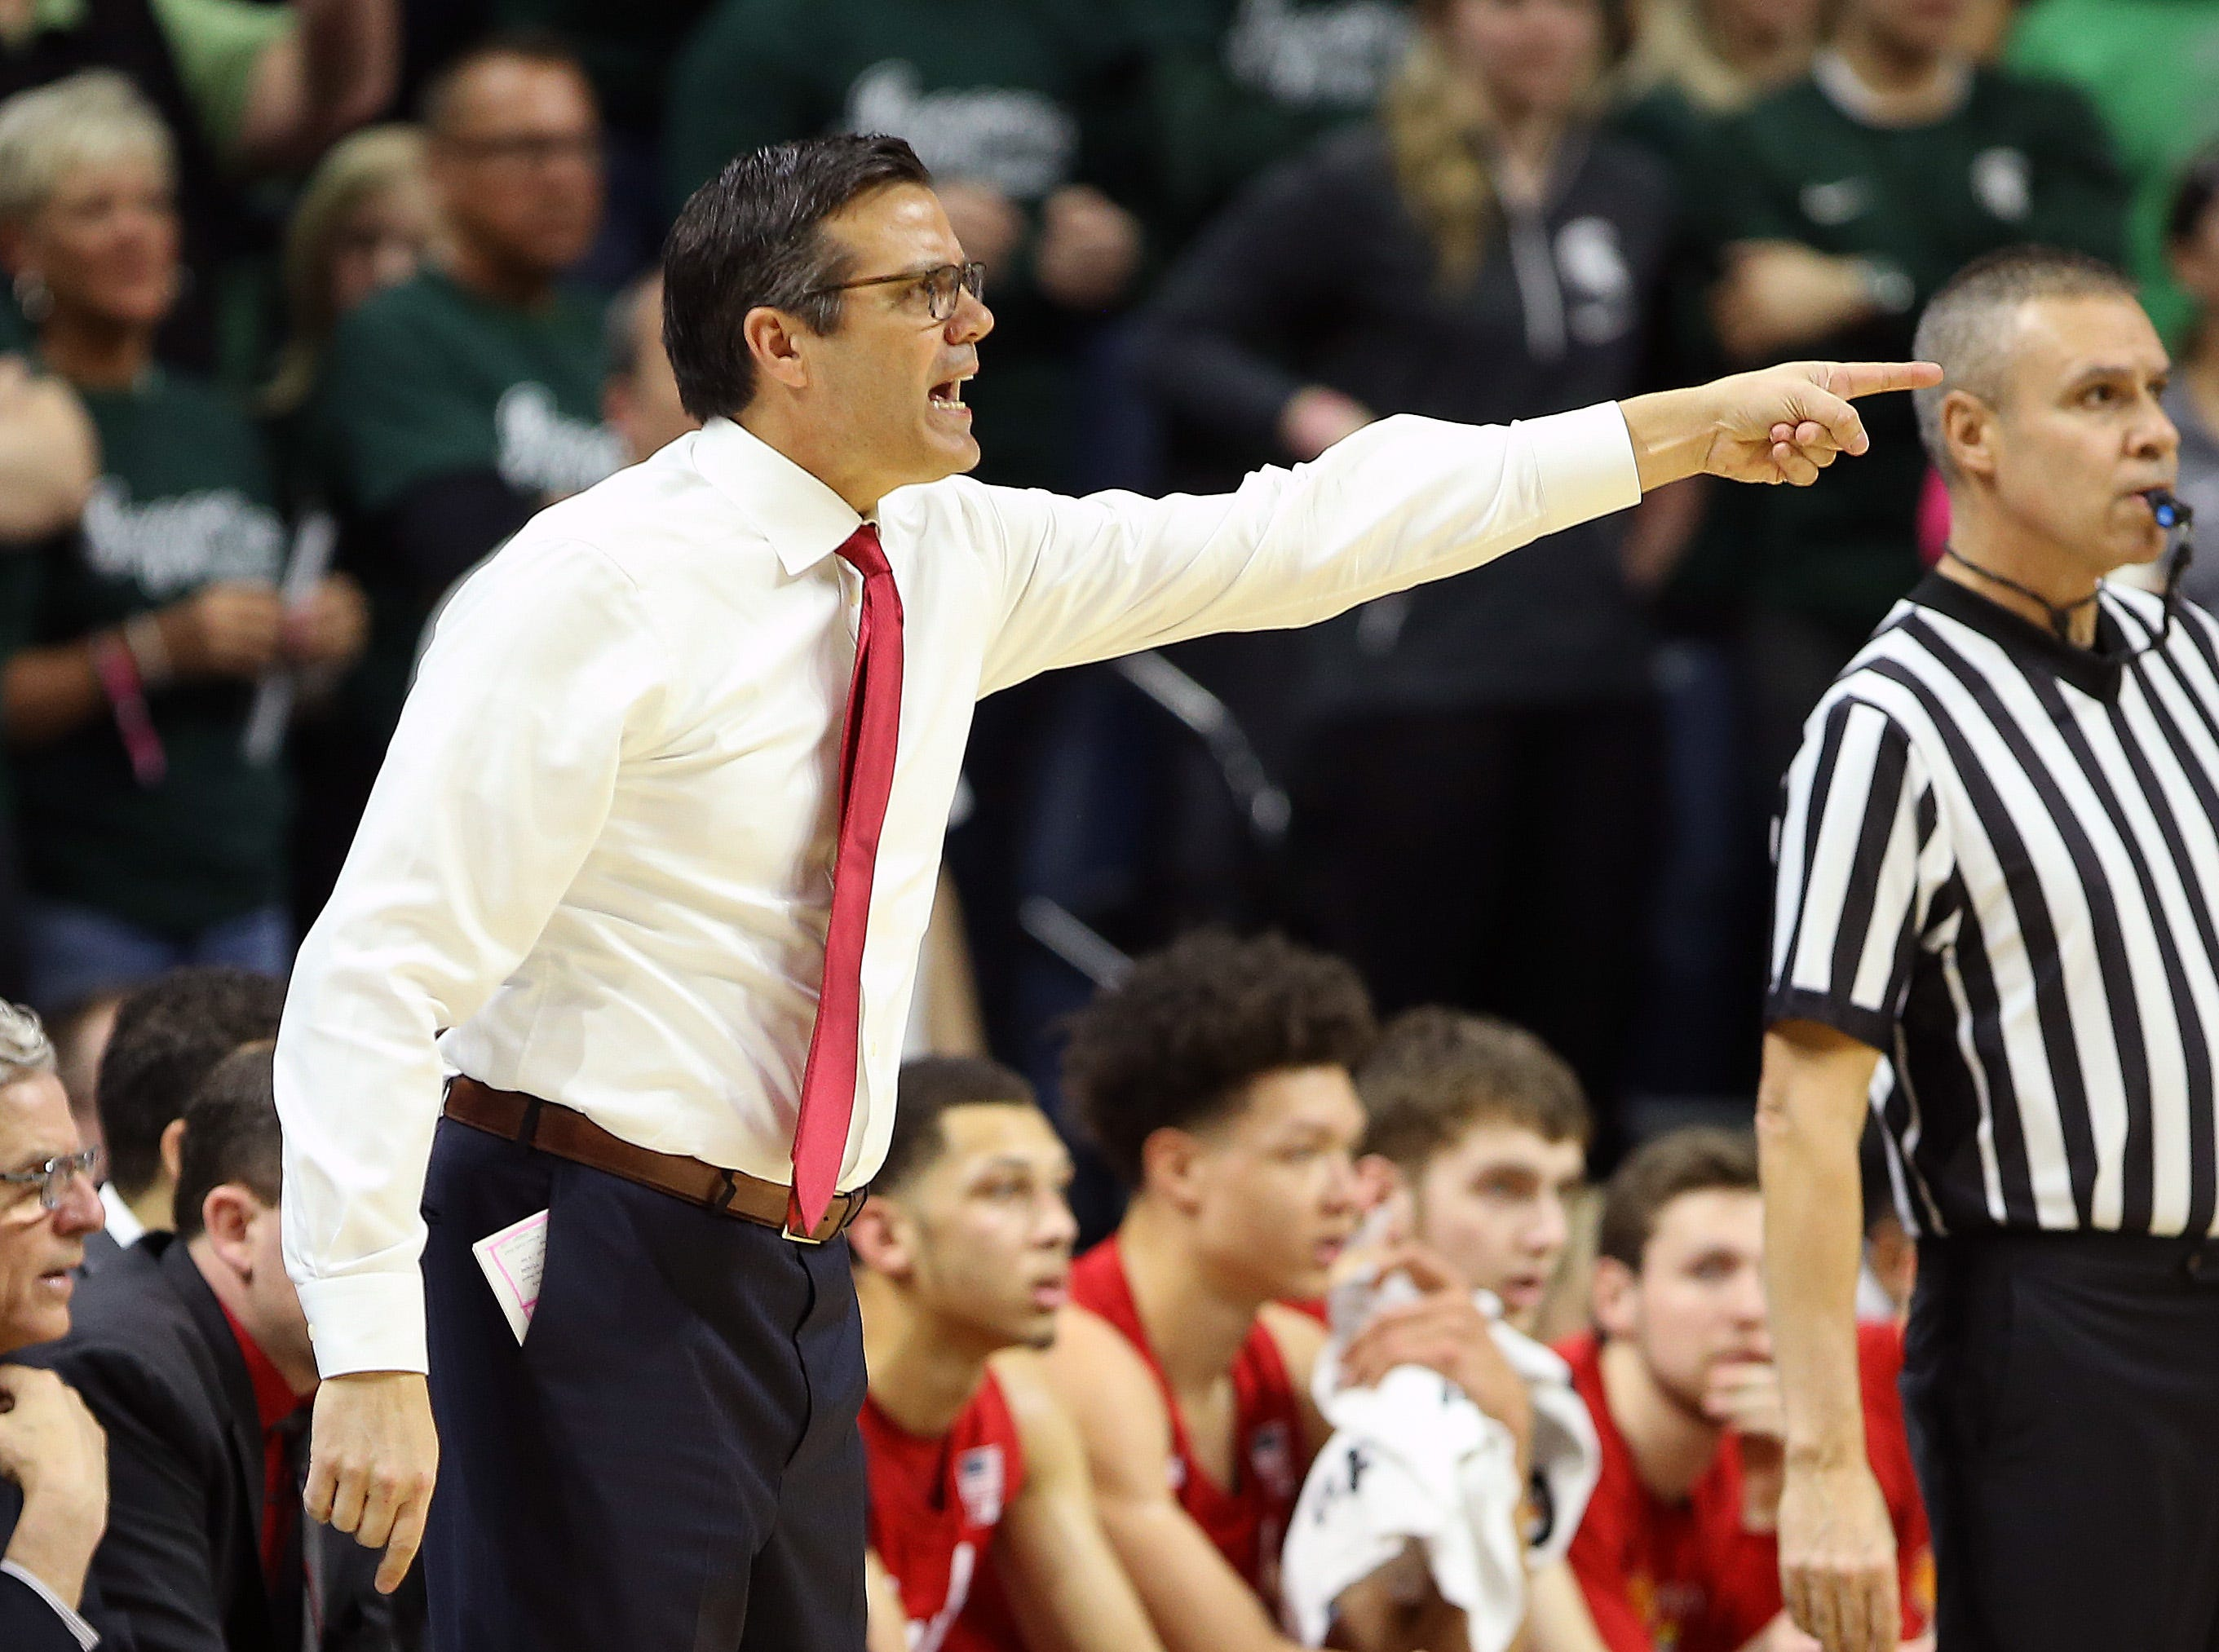 Mar 5, 2019; East Lansing, MI, USA; Nebraska Cornhuskers head coach Tim Miles reacts during the first half of a game against the Michigan State Spartans at the Breslin Center. Mandatory Credit: Mike Carter-USA TODAY Sports